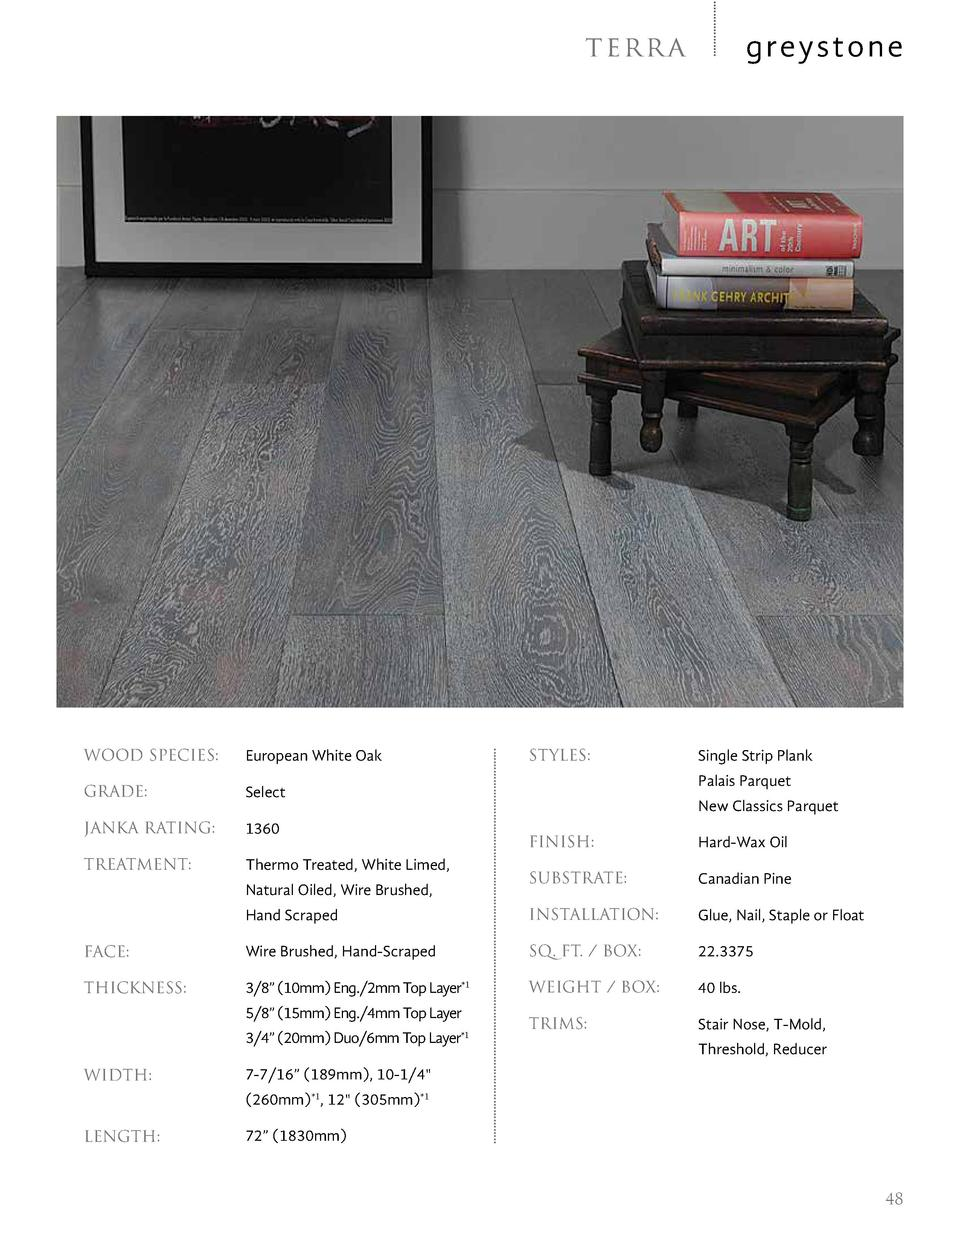 greystone  te r r a  WOOD SPECIES   European White Oak  GRADE   Select  JANKA RATING   1360  TREATMENT   Thermo Treated, W...